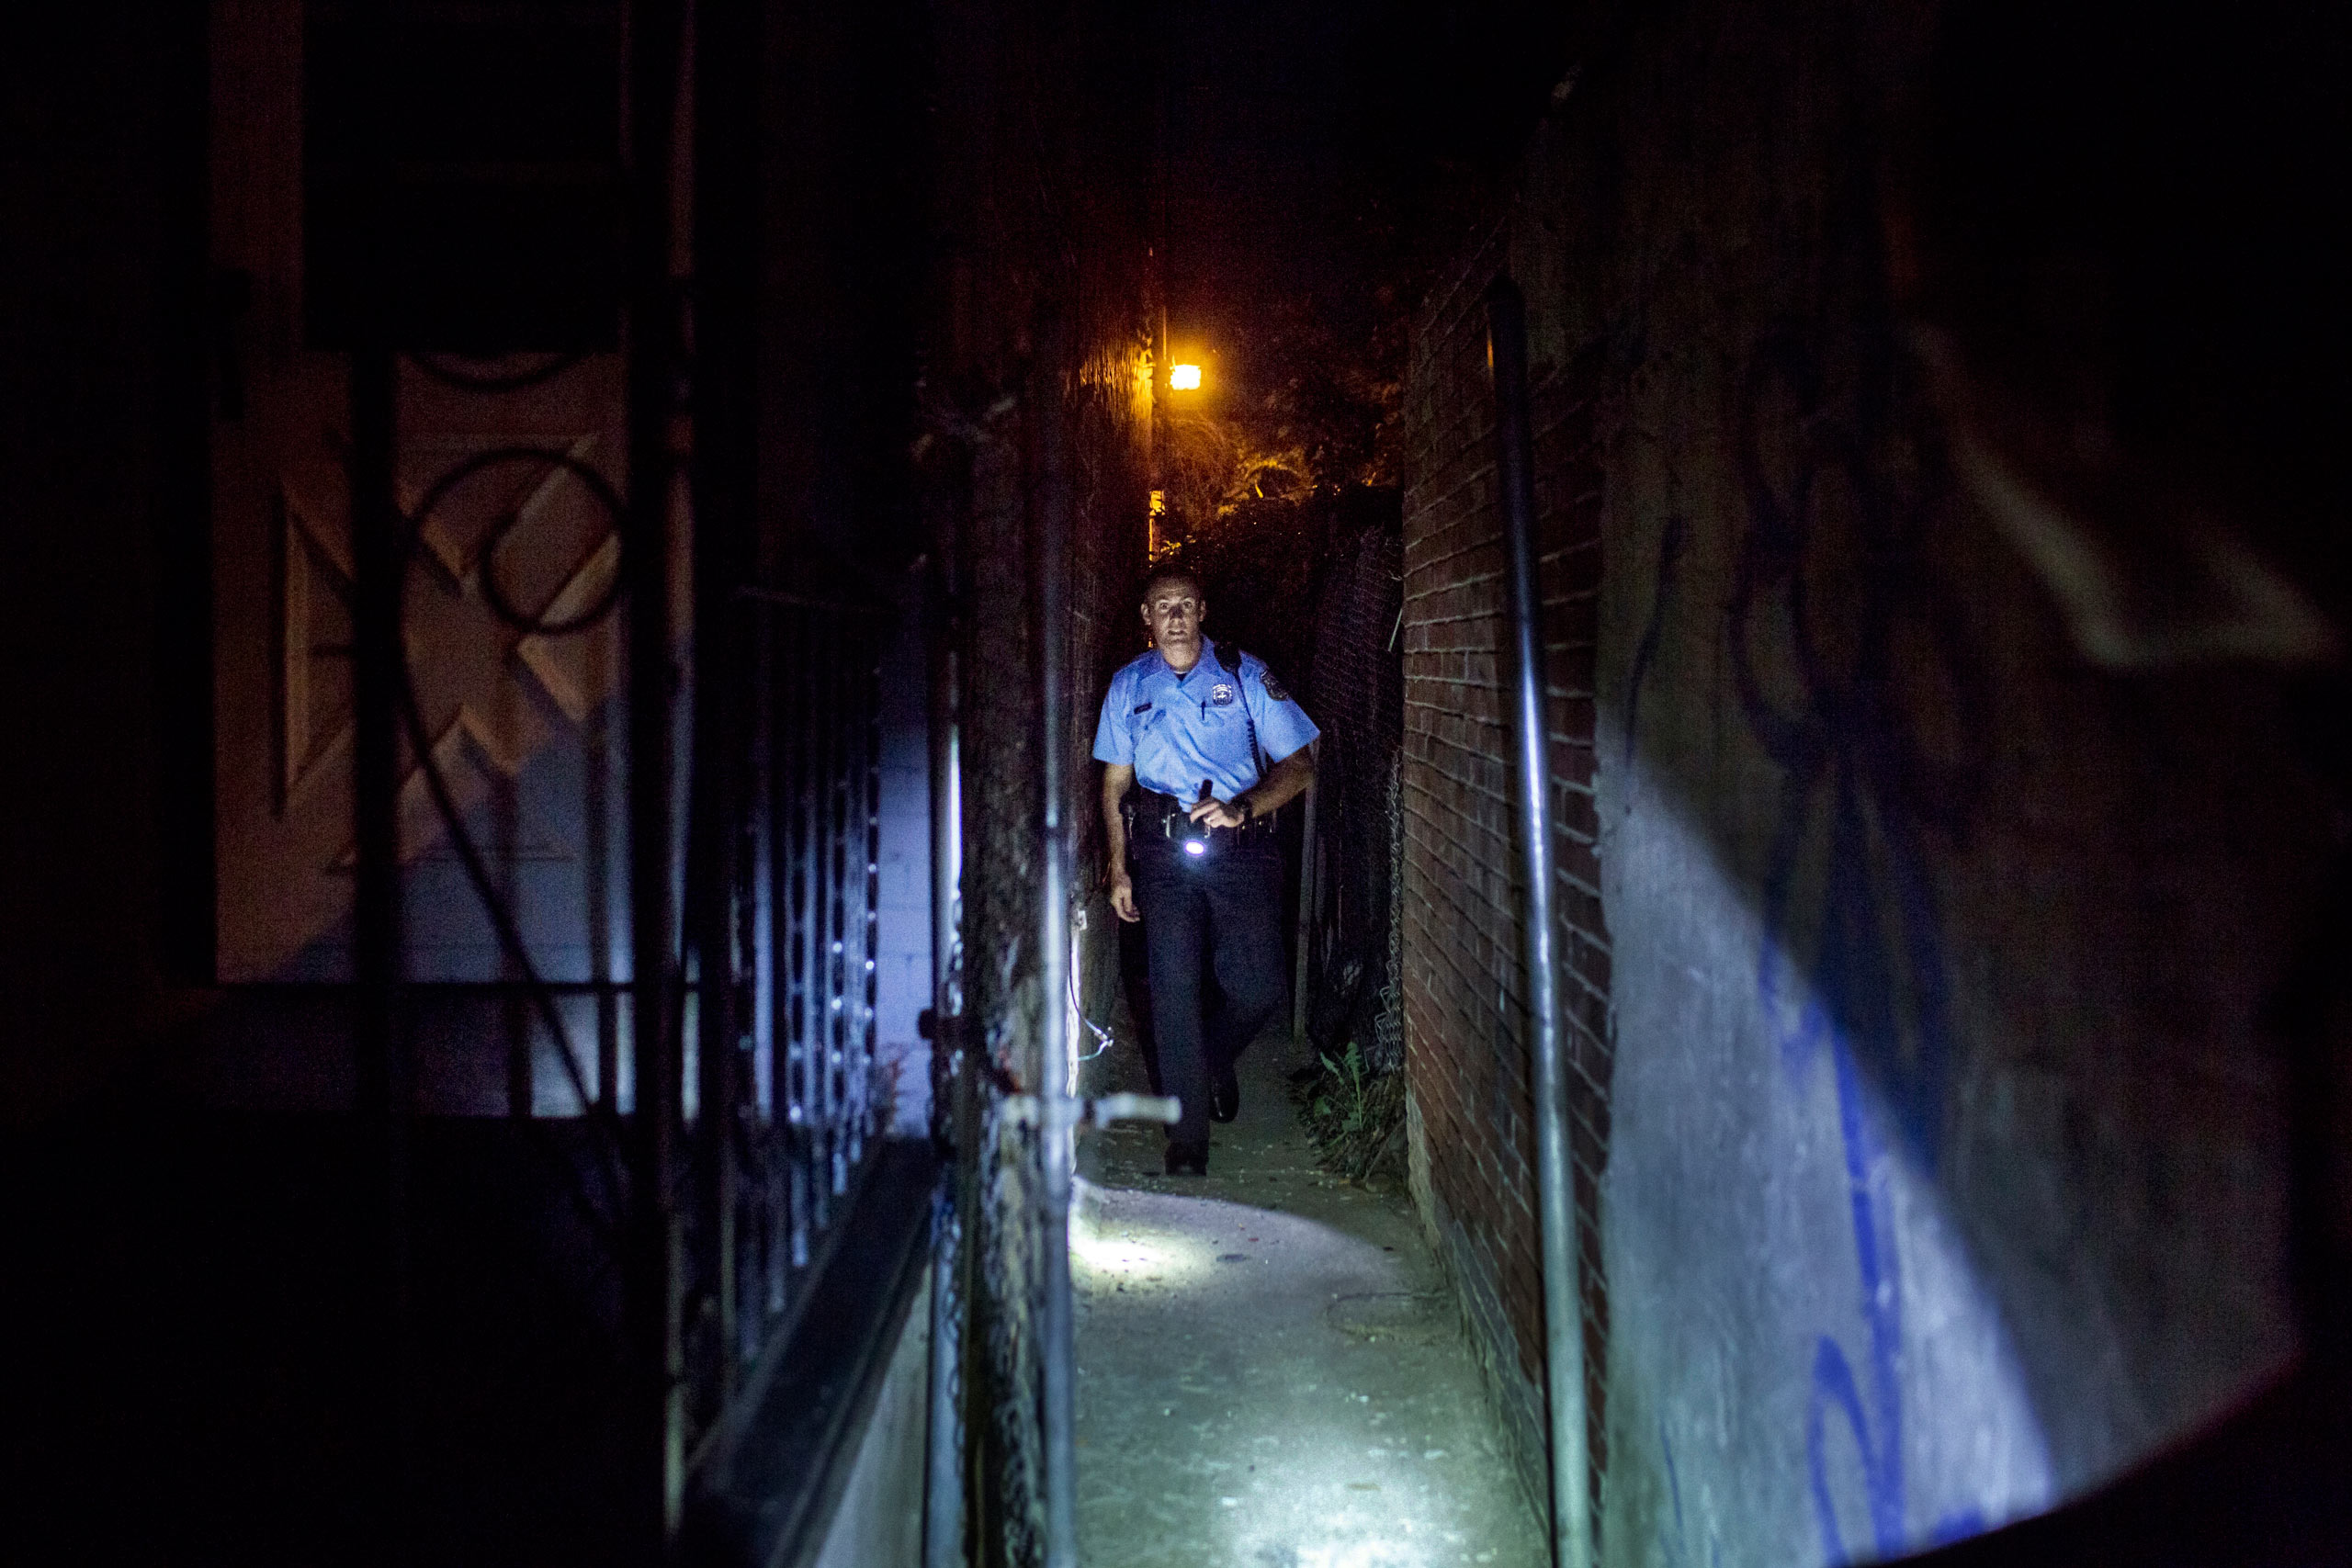 Officer Richard O'Brien searches an alley where a suspect had fled previously, searching for evidence he might have dropped items like drugs or weapons. He found nothing. July 31, 2015. Philadelphia, Pa.